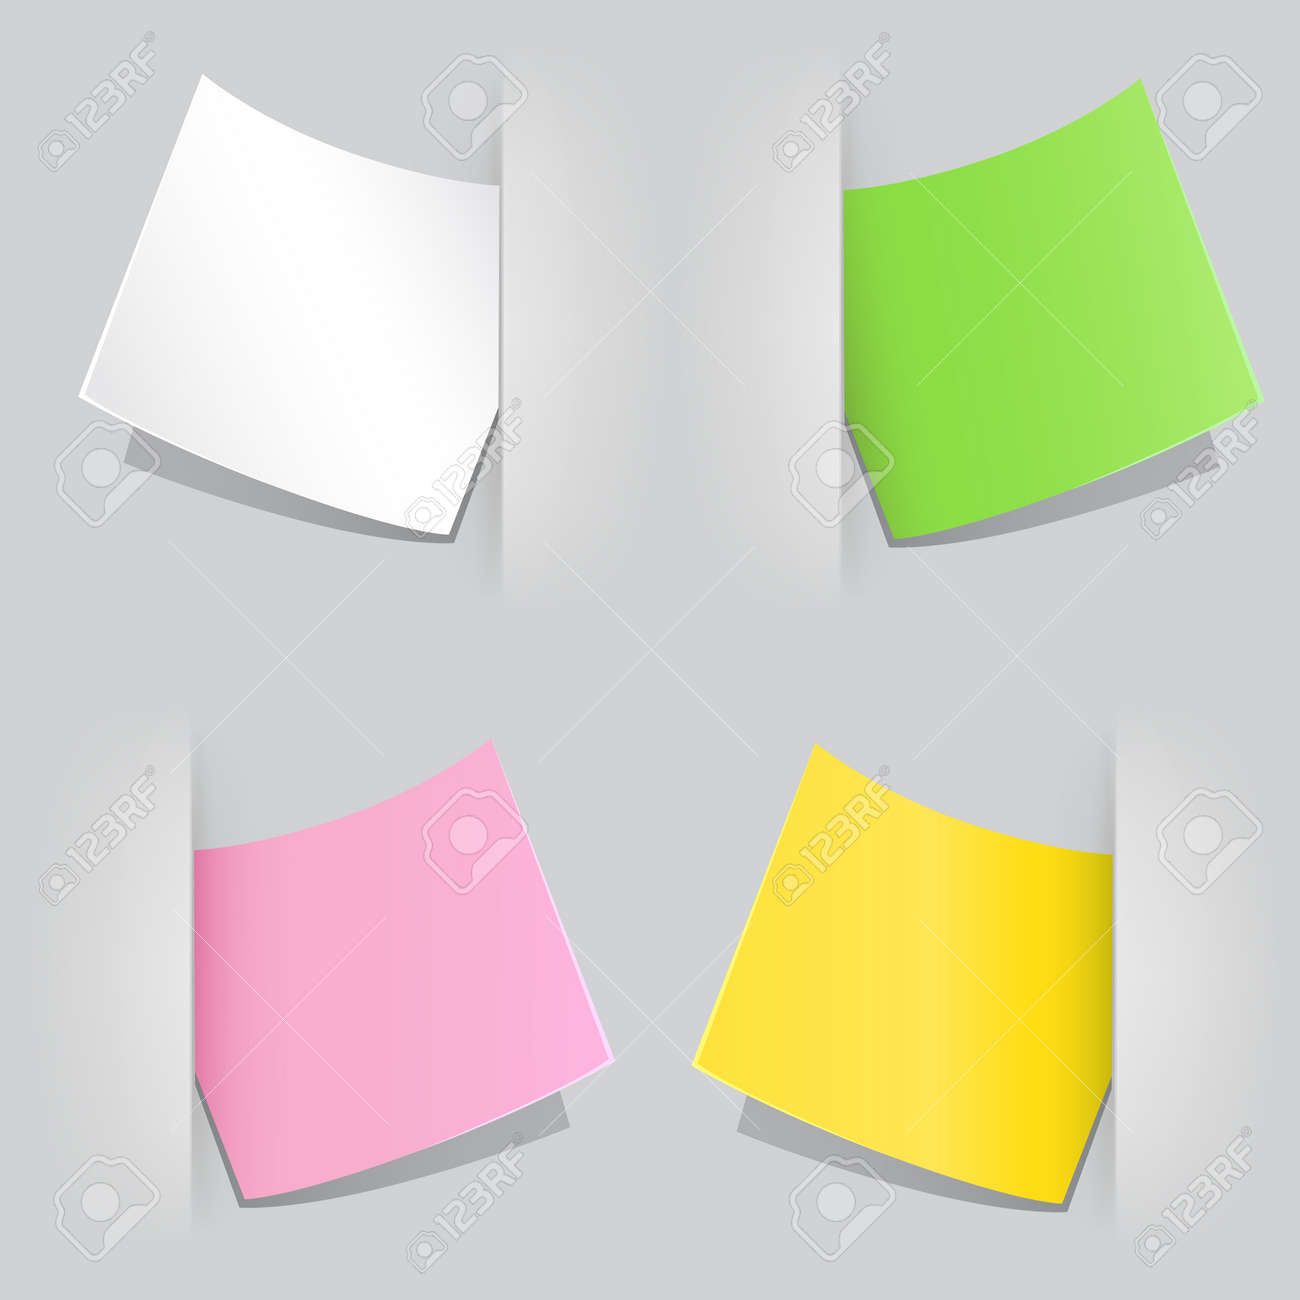 The colored sheet of paper popped as reminder in the gray background Stock Vector - 21742865